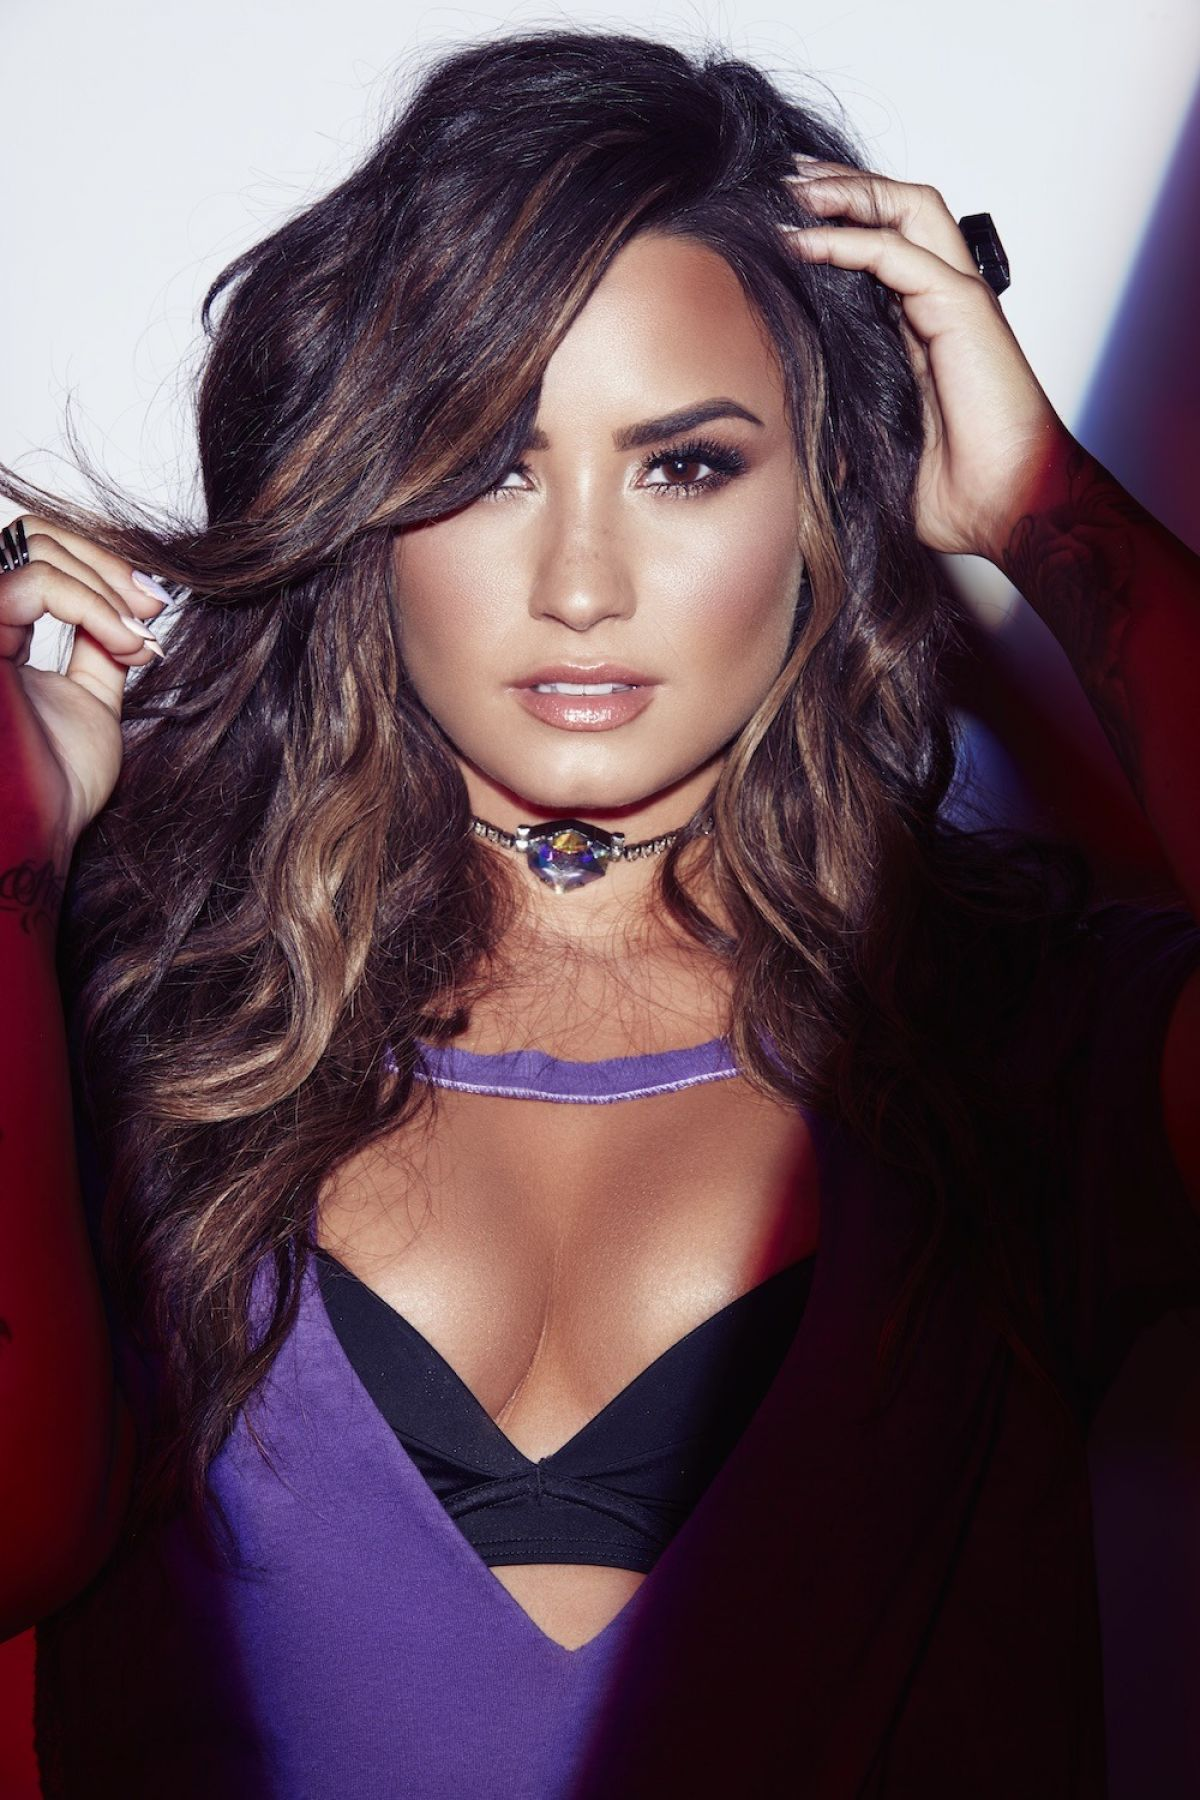 demi lovato - photo #2